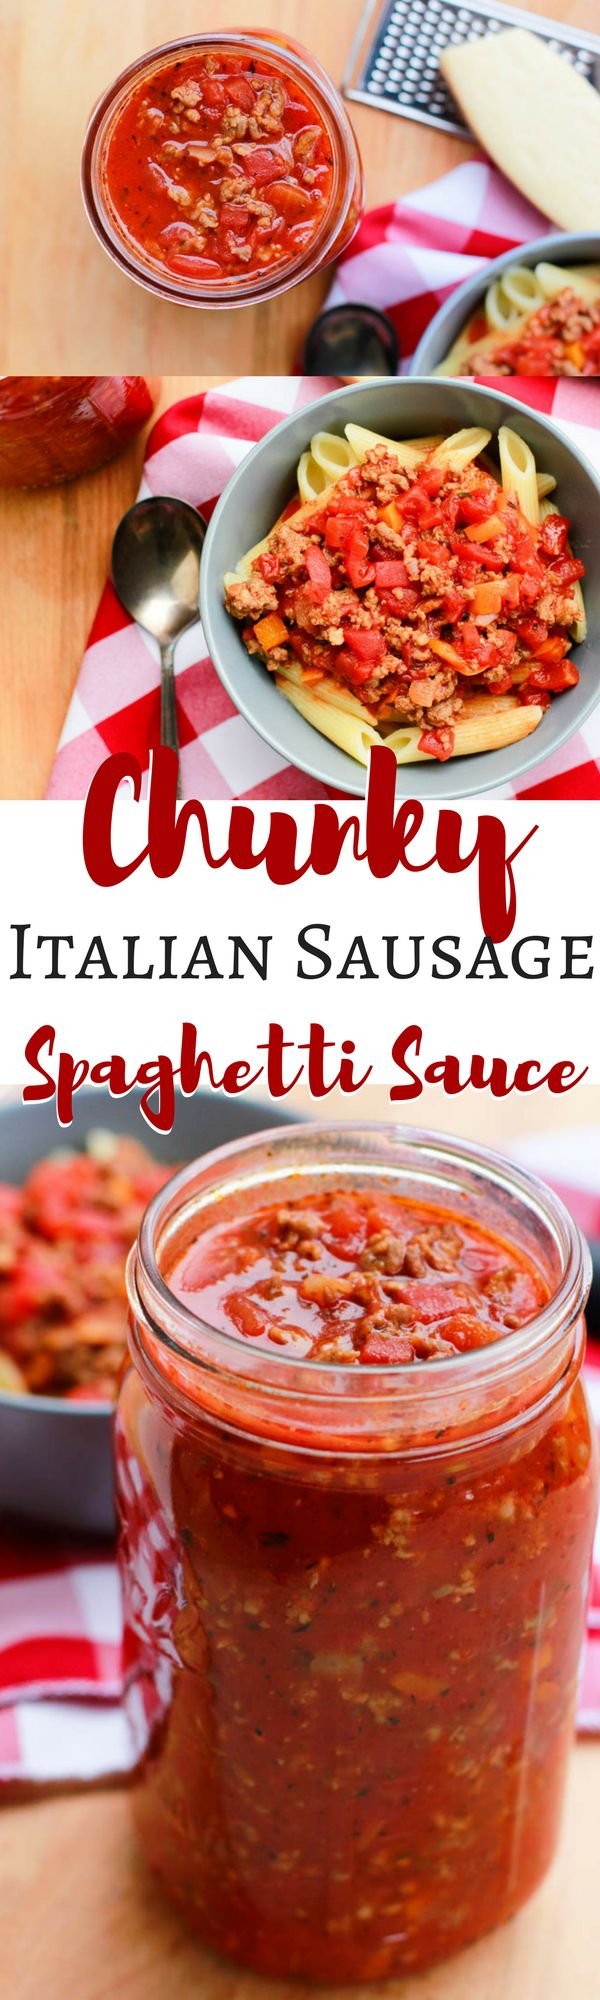 Surprise your family next spaghetti night with this delightfully delicious Chunky Italian Sausage Spaghetti Sauce.